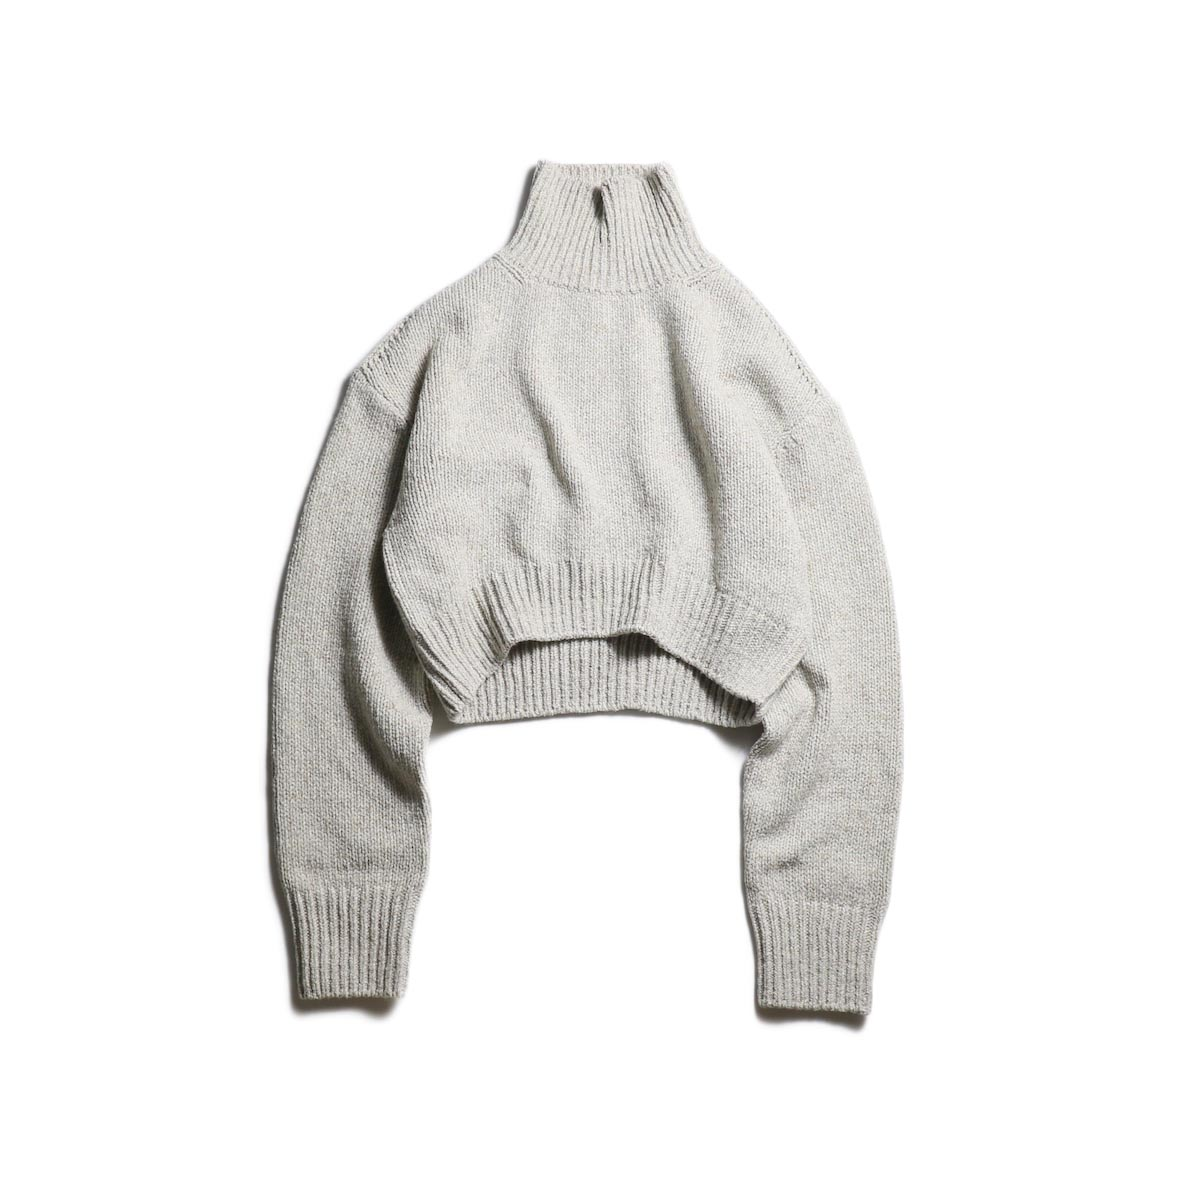 FUMIKA UCHIDA / 3G Cashmere/Silk High Neck Short Sweater (Oatmeal)